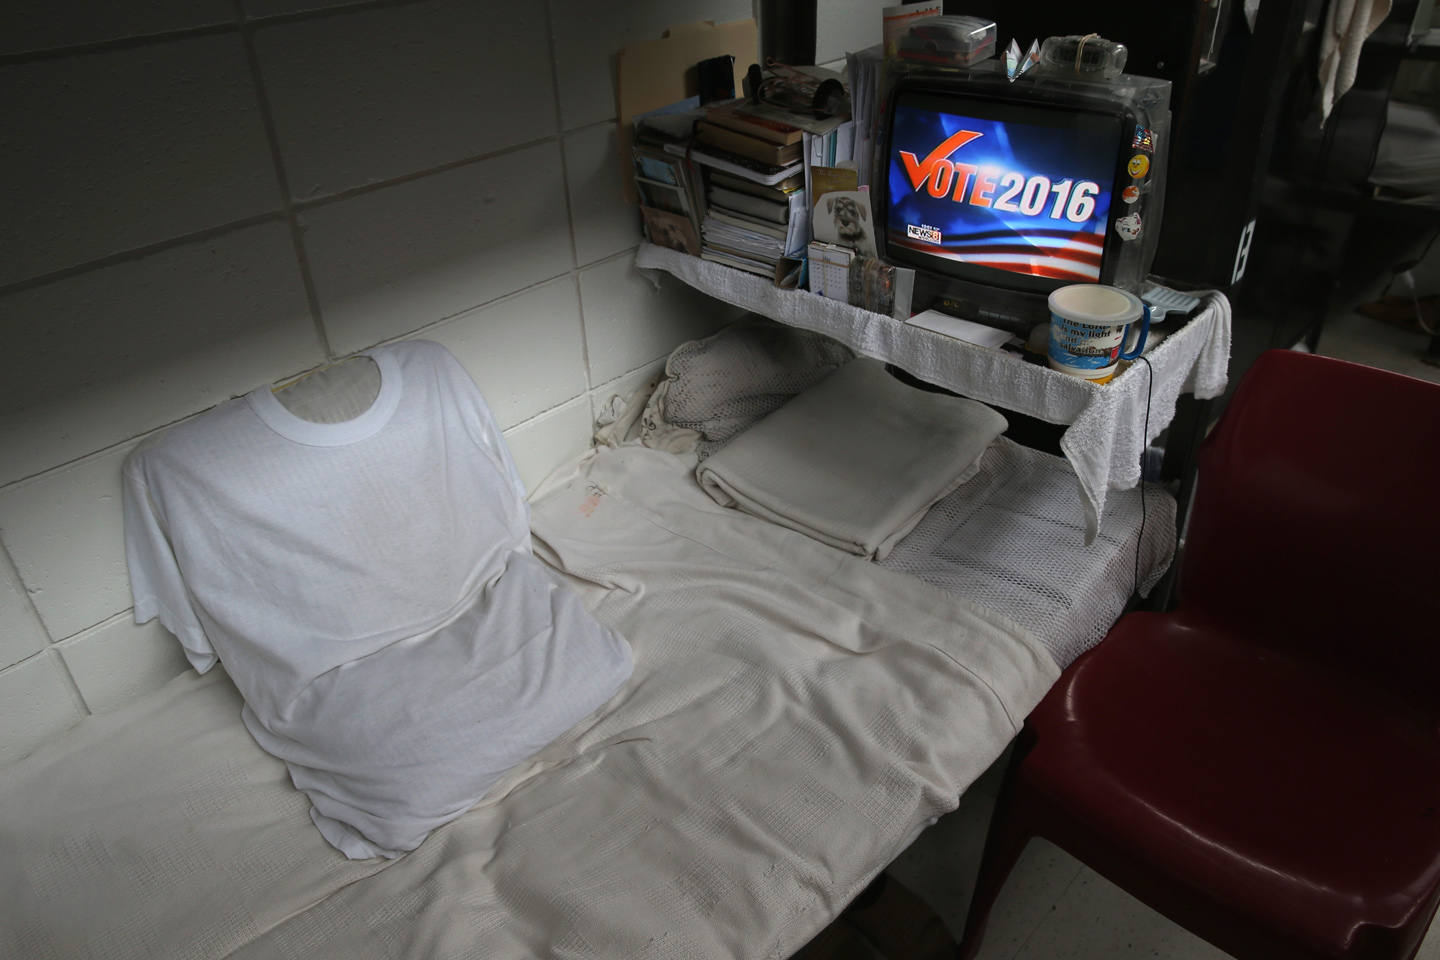 "ENFIELD, CT - MAY 03:  Television news features Donald Trump over a prisoner's bunk at the Veterans Unit of the Cybulski Rehabilitation Center on May 3, 2016 in Enfield, Connecticut. Connecticut is one of only four states where voting rights are restored to convicted criminals immediately upon completion of their prison and parole time. The Veterans Unit houses some 110 inmates, all U.S. military veterans convicted of crimes ranging from petty larceny to murder. Prisoners at the unit typically have less than two years left on their sentences. The unit is part of a Connecticut Department of Correction program to turn some prisons into reintegration centers to prepare inmates for successful re-entry into society. Criminal justice and prison reforms are taking hold with bi-partisan support nationwide in an effort to reduce prison populations and recidivism. The state's criminal justice reforms fall under Connecticut Governor Dannel Malloy's ""Second Chance Society"" legislation.  (Photo by John Moore/Getty Images)"